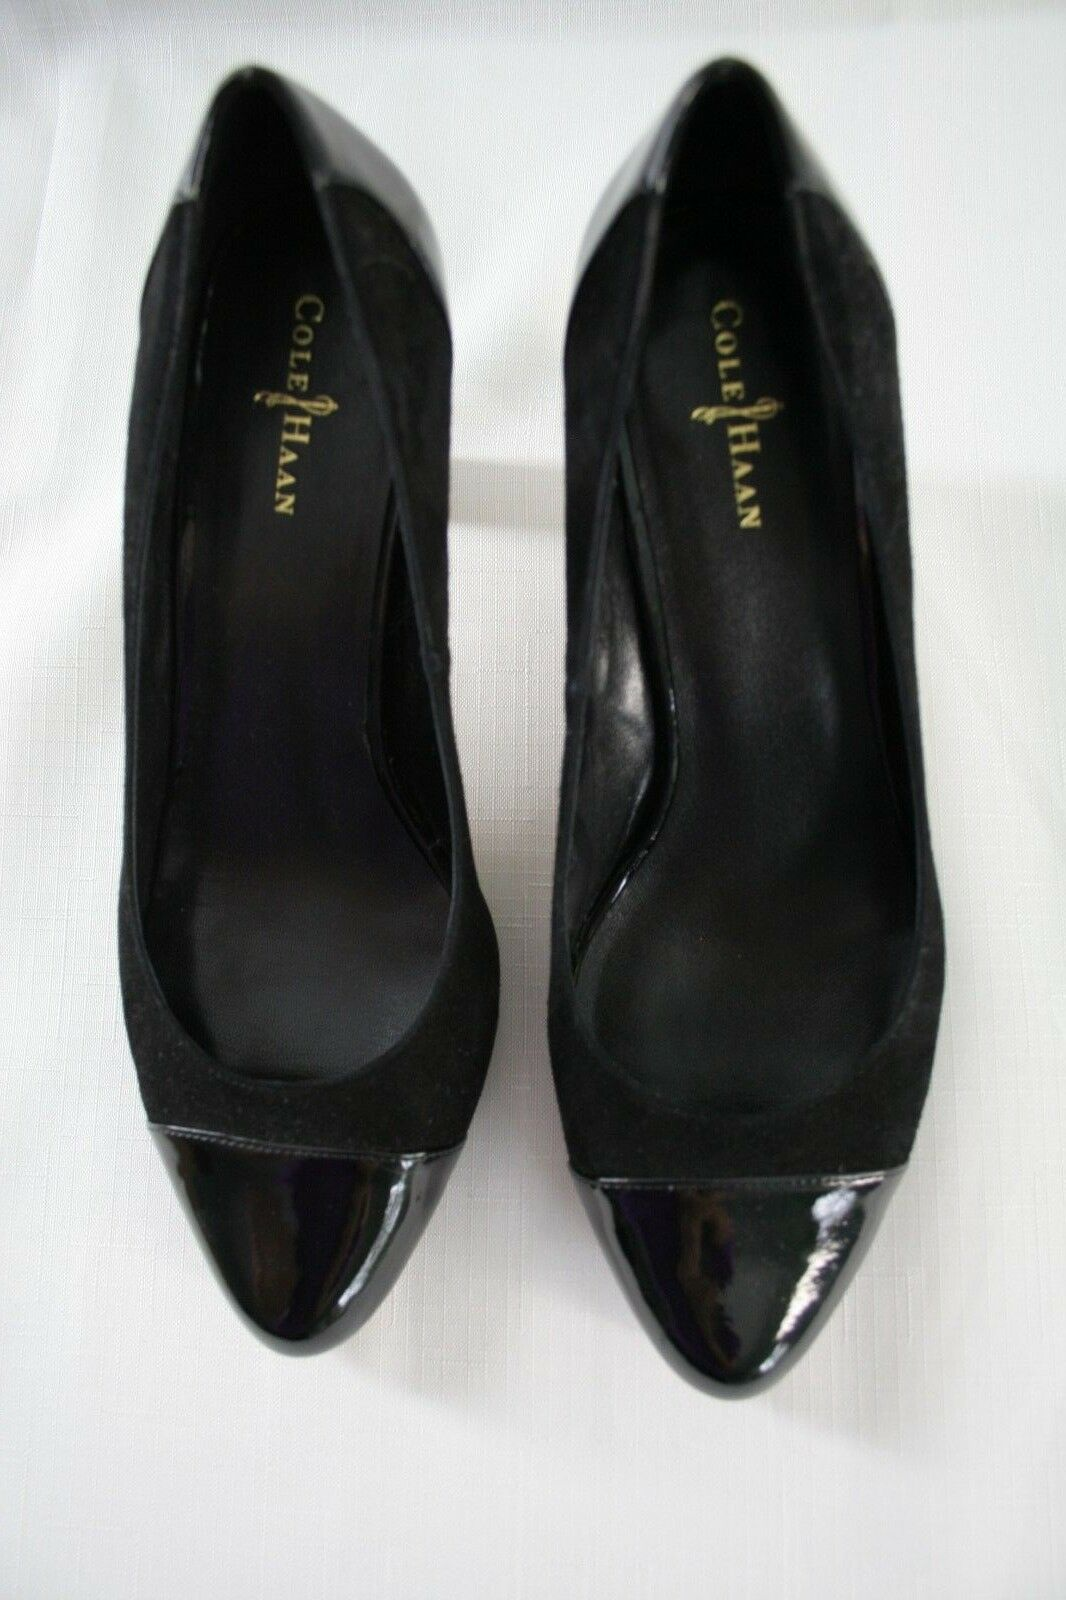 Womens Cole Haan Black Pumps Patent Leather Leather Leather & Suede  Sz 8 B Margot CT D38565 Sho 63d3a5